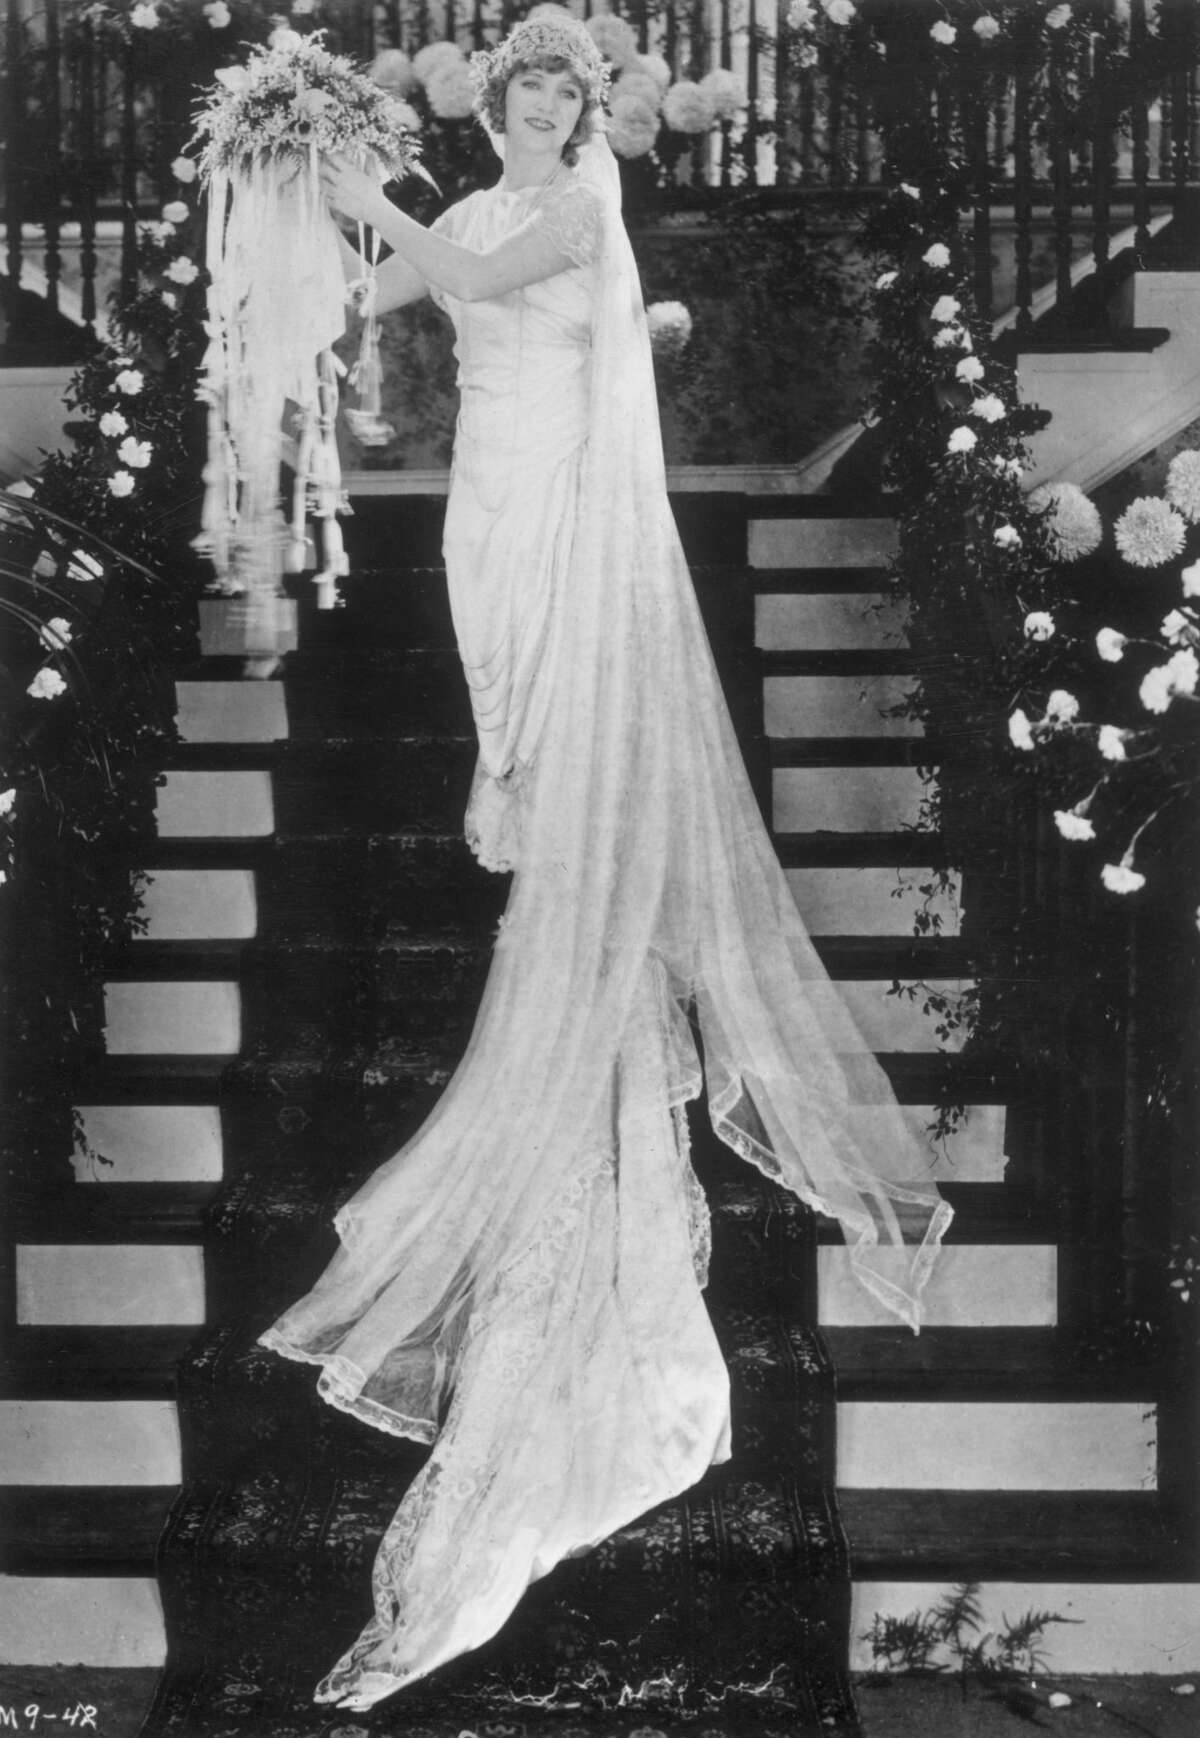 American film actress Mary Pickford (1893 - 1979), radiant in a wedding dress circa 1920.